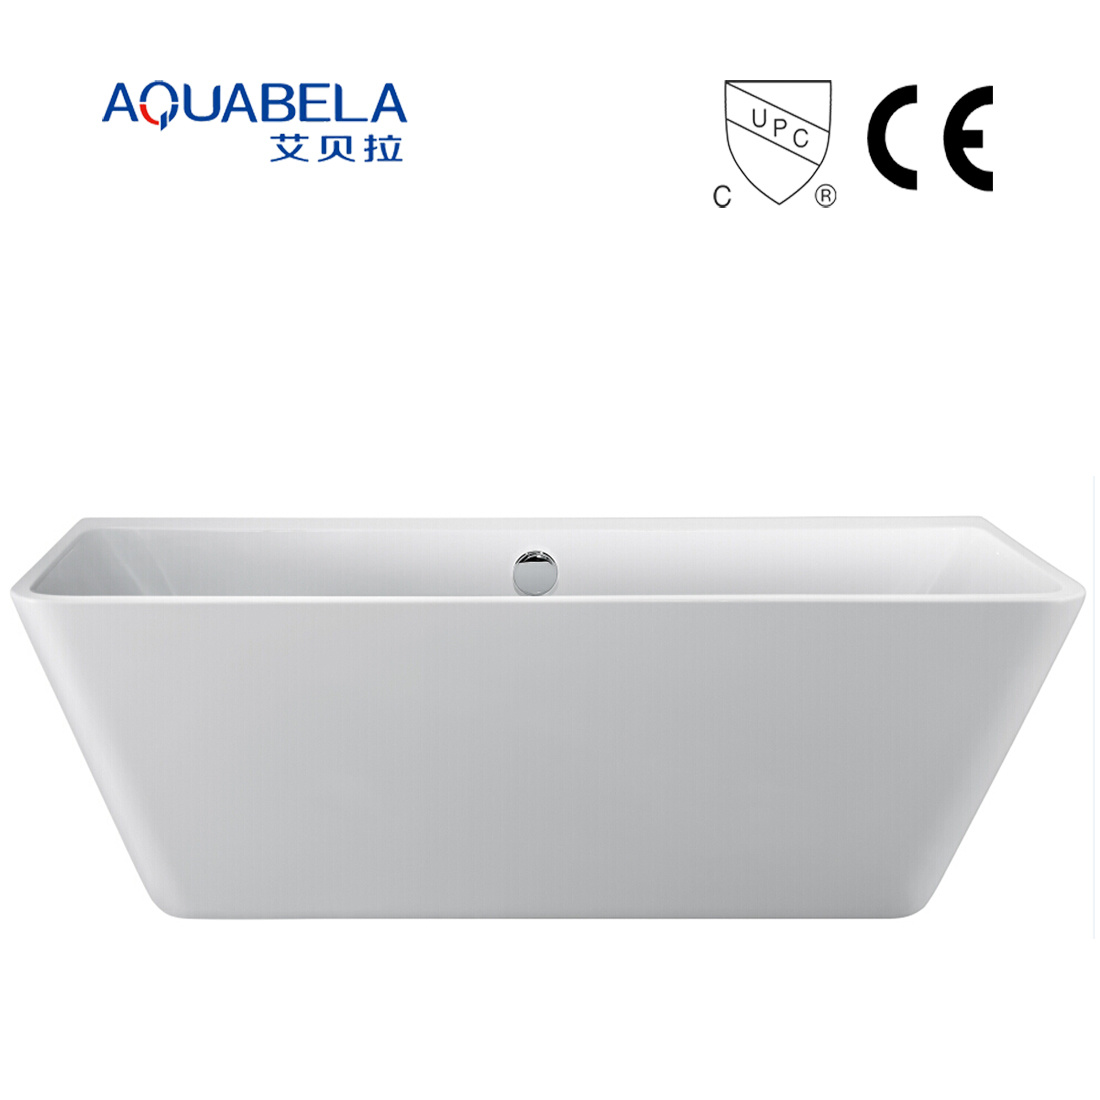 Wall Against Wide Flange Acrylic Freestanding Hot Tub Bathtub